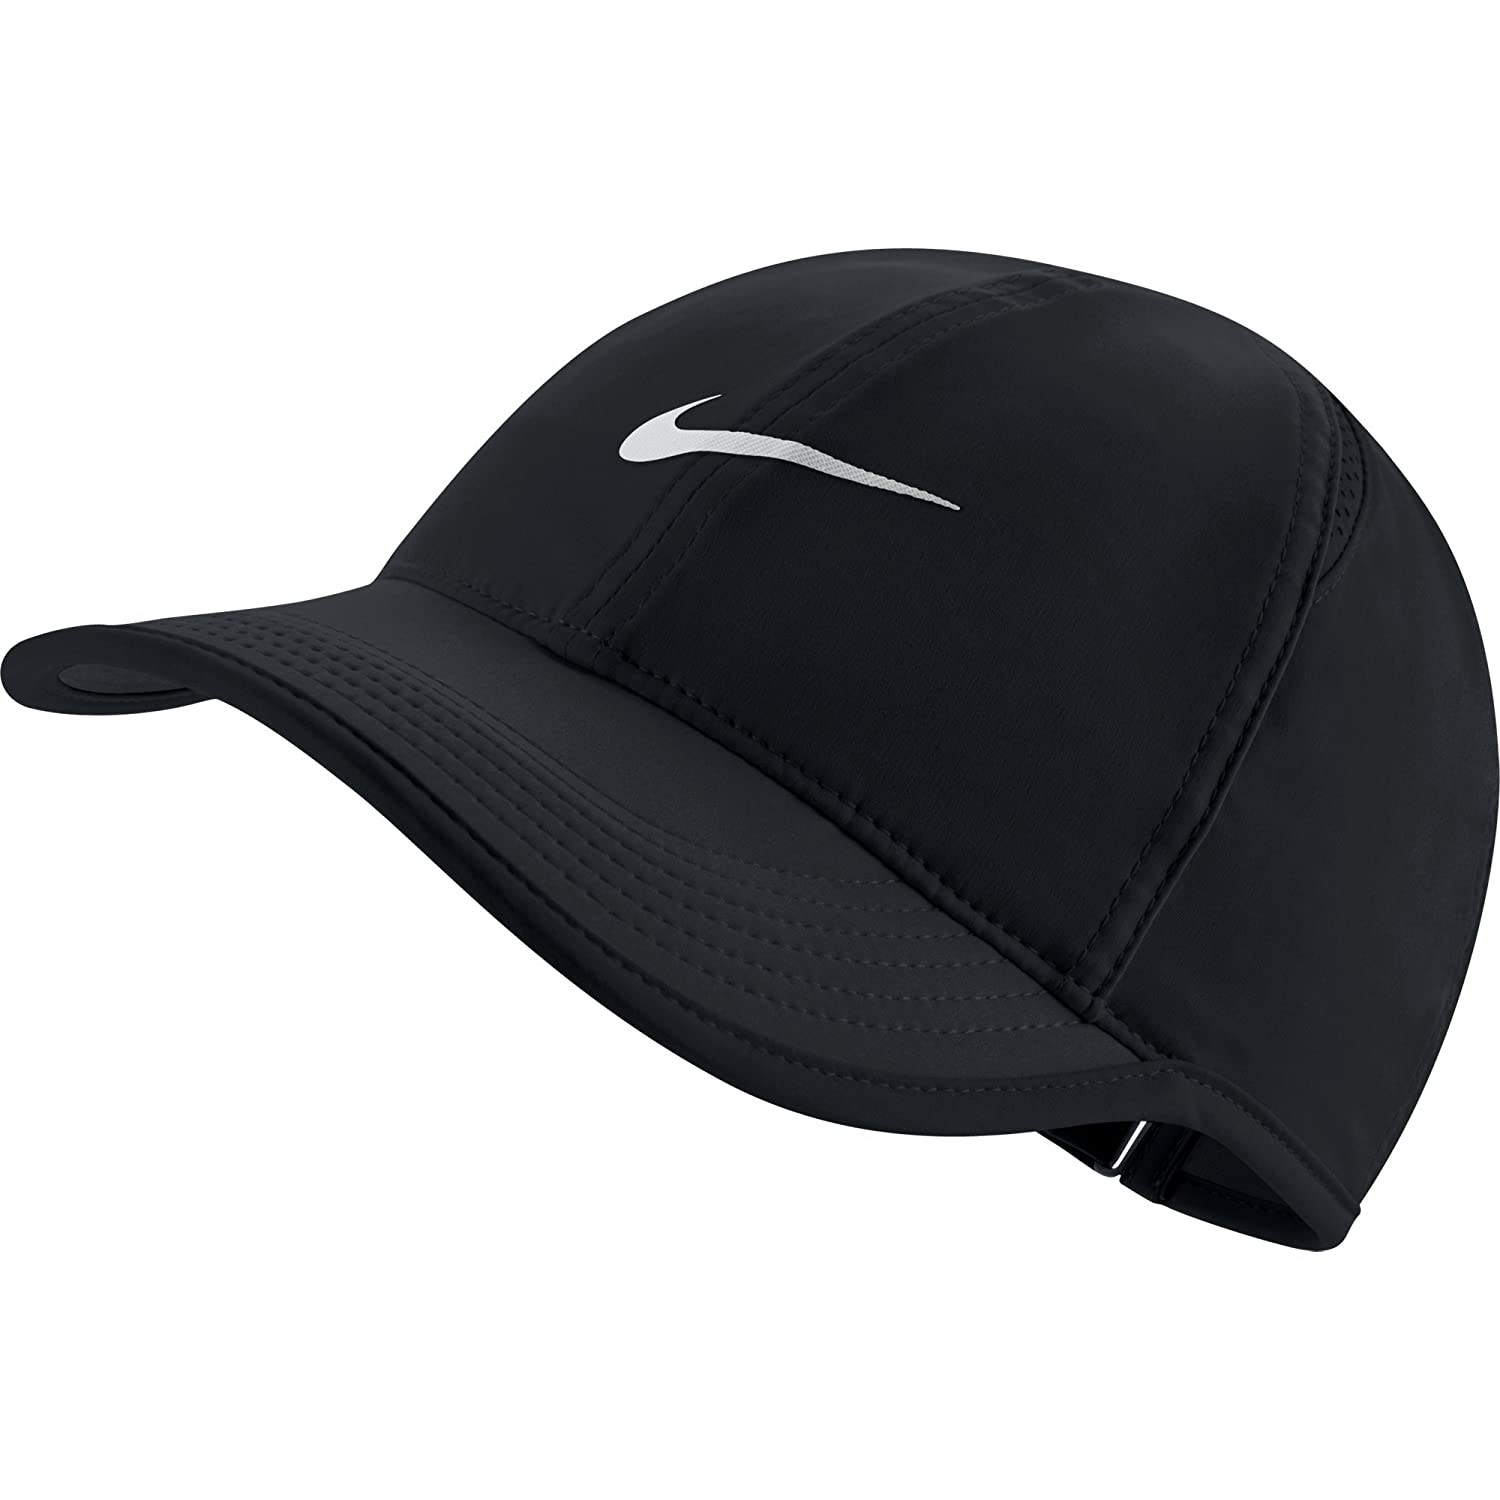 a19f5bebbf0 Amazon.com  NIKE Women s AeroBill Featherlight Tennis Cap